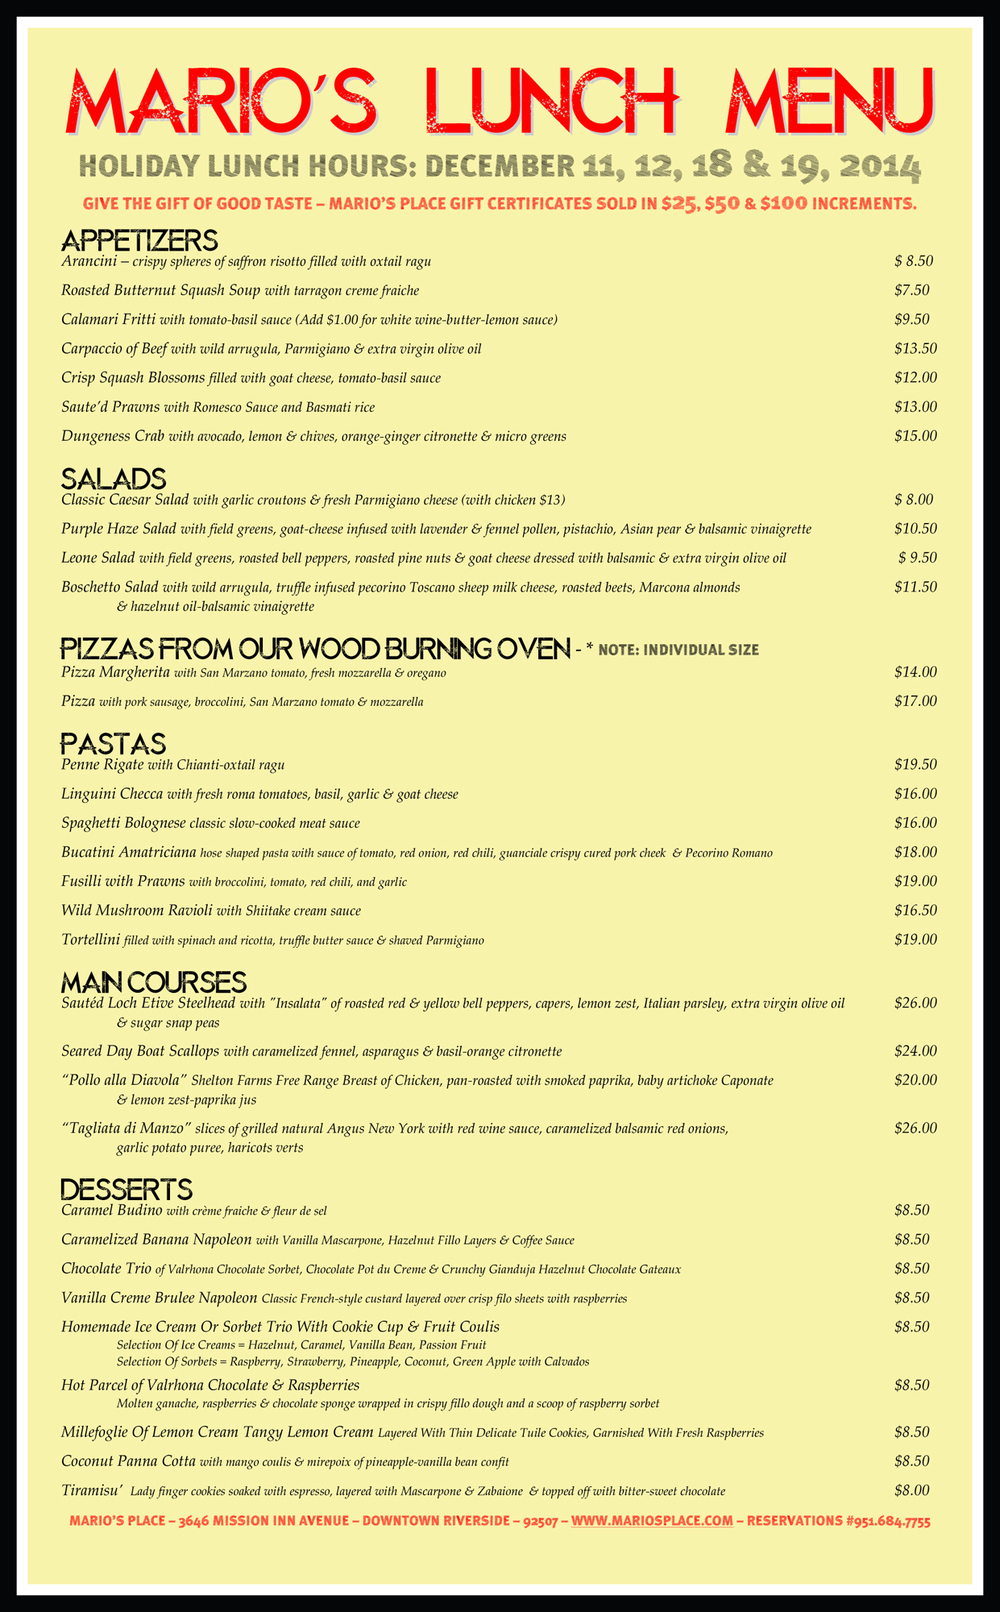 Lunch Menu Mario's Place 2014.jpg